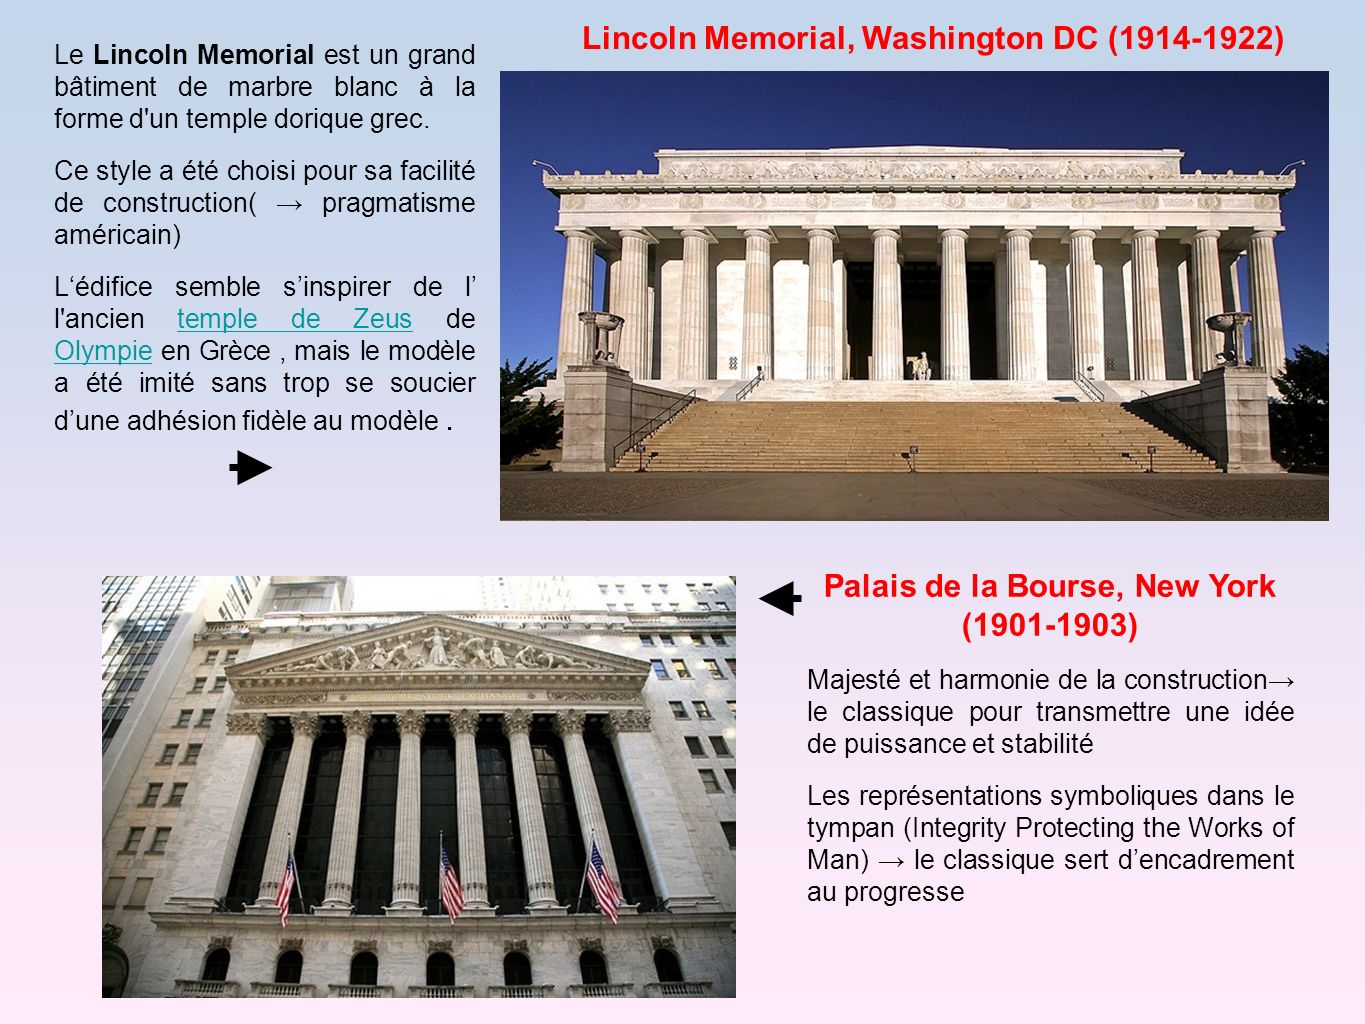 Lincoln Memorial, Washington DC (1914-1922)